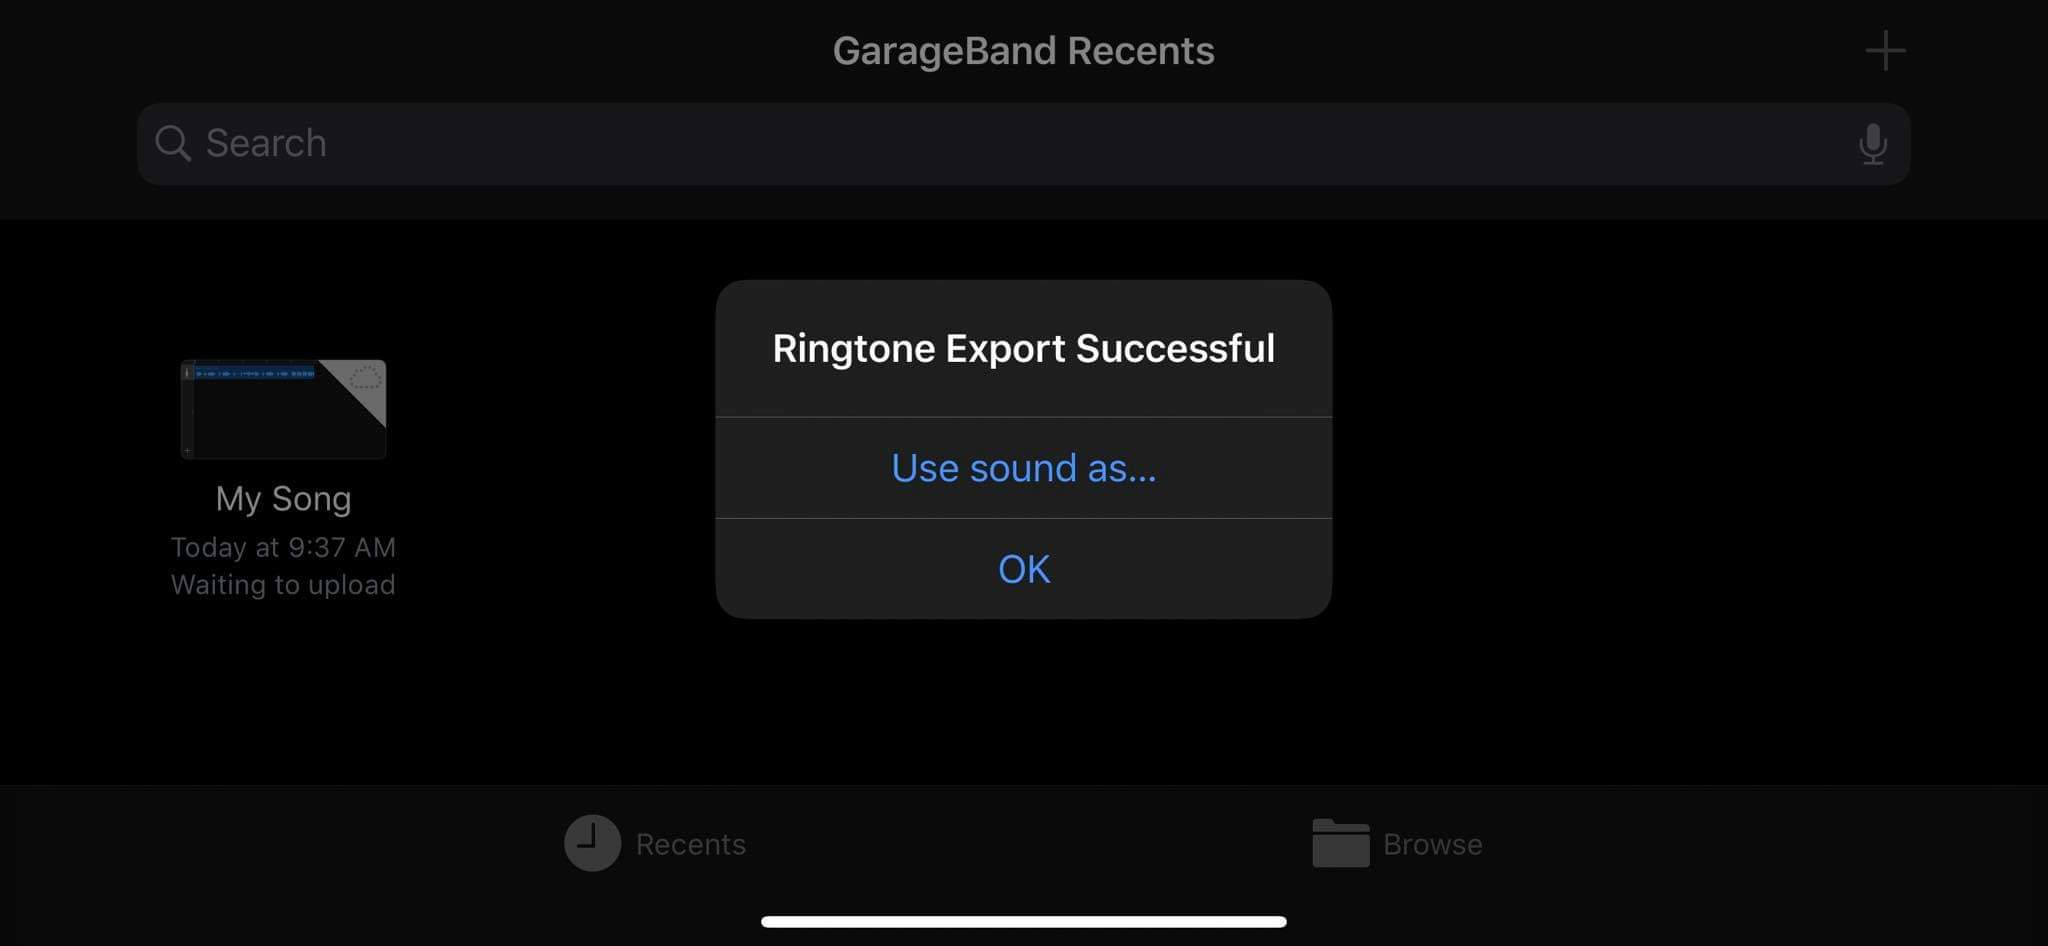 How to change ringtone on iPhone